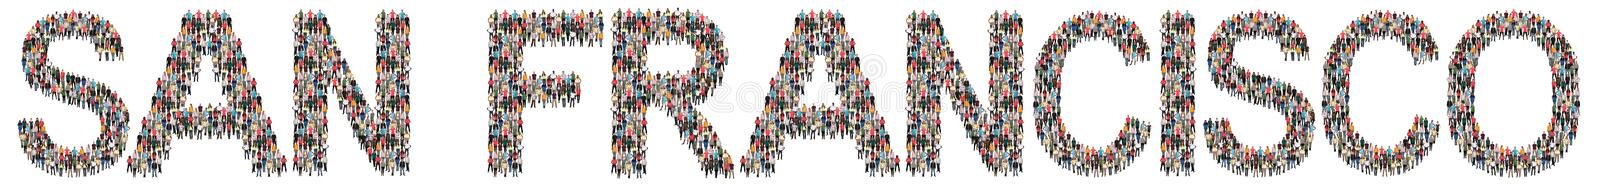 San Francisco multi ethnic group of people stock images